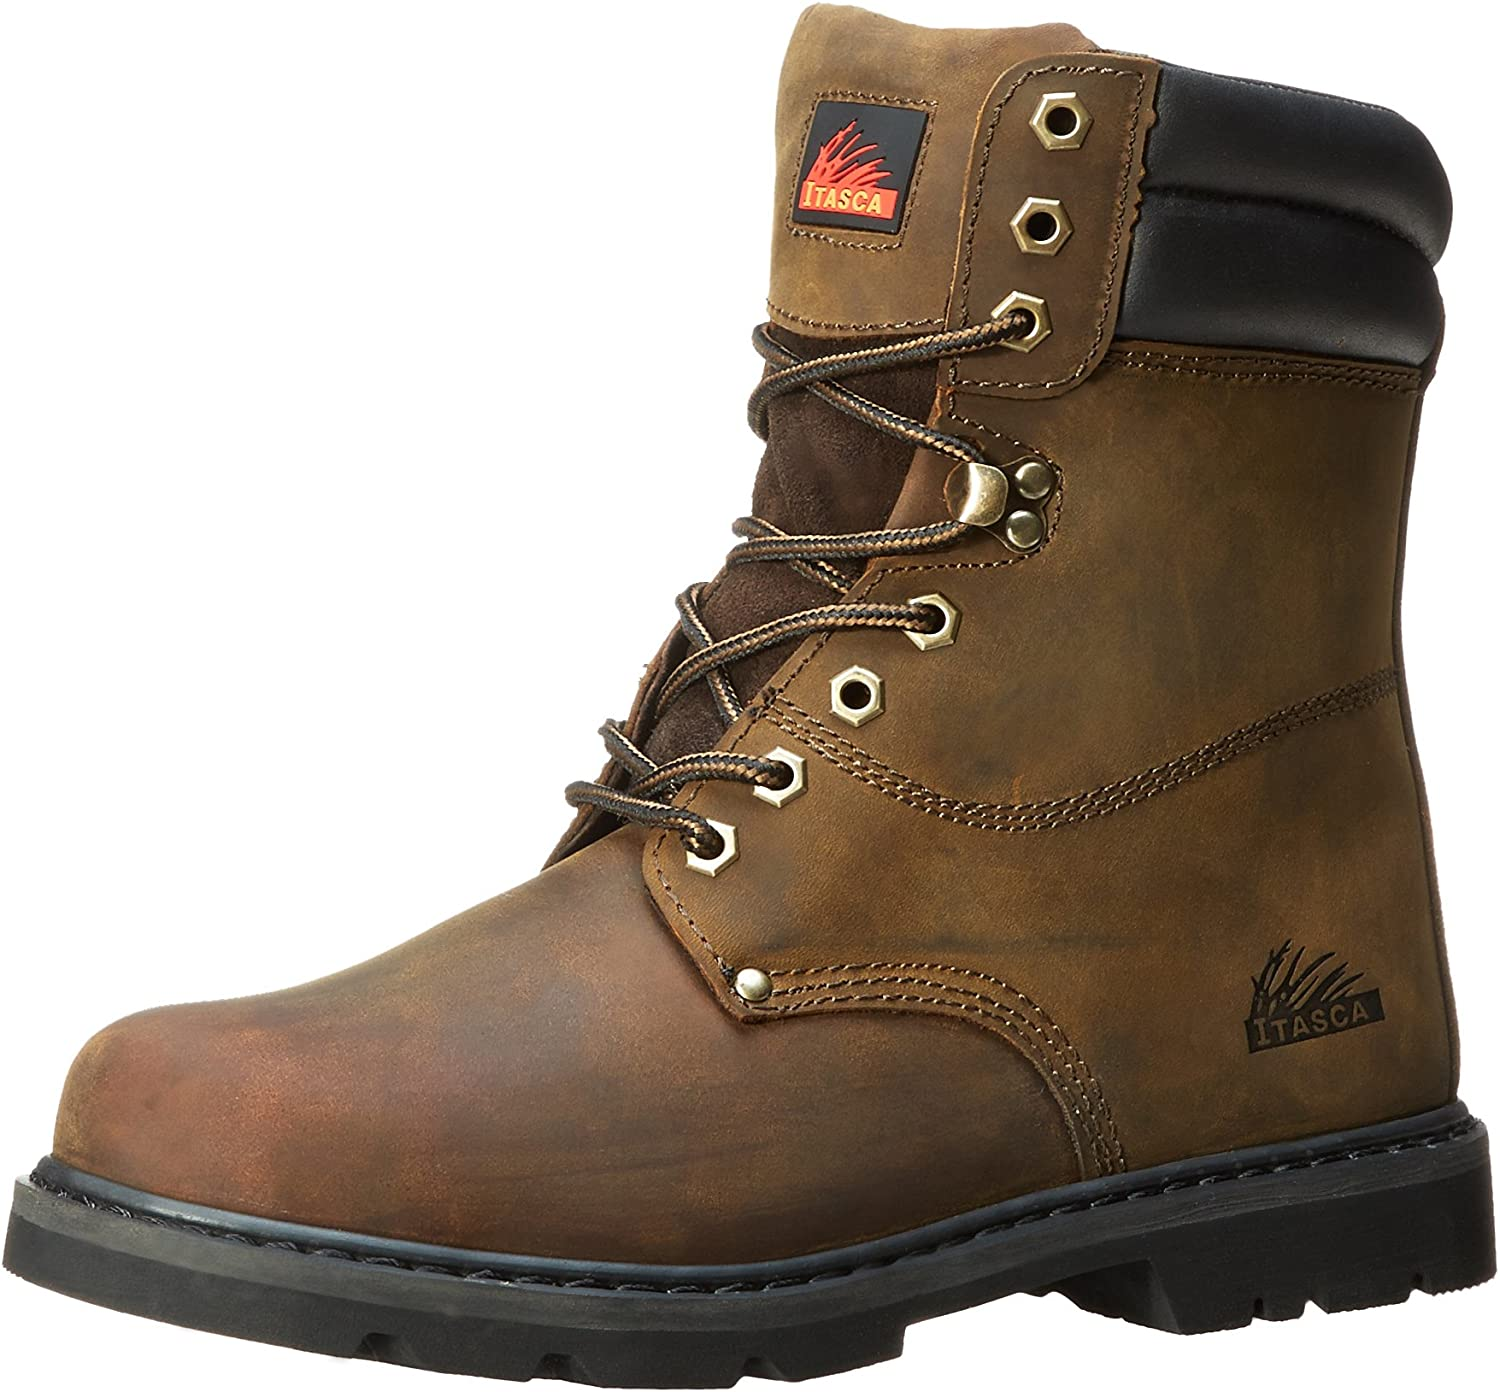 Itasca Men's Force 10 Safety Toe-M